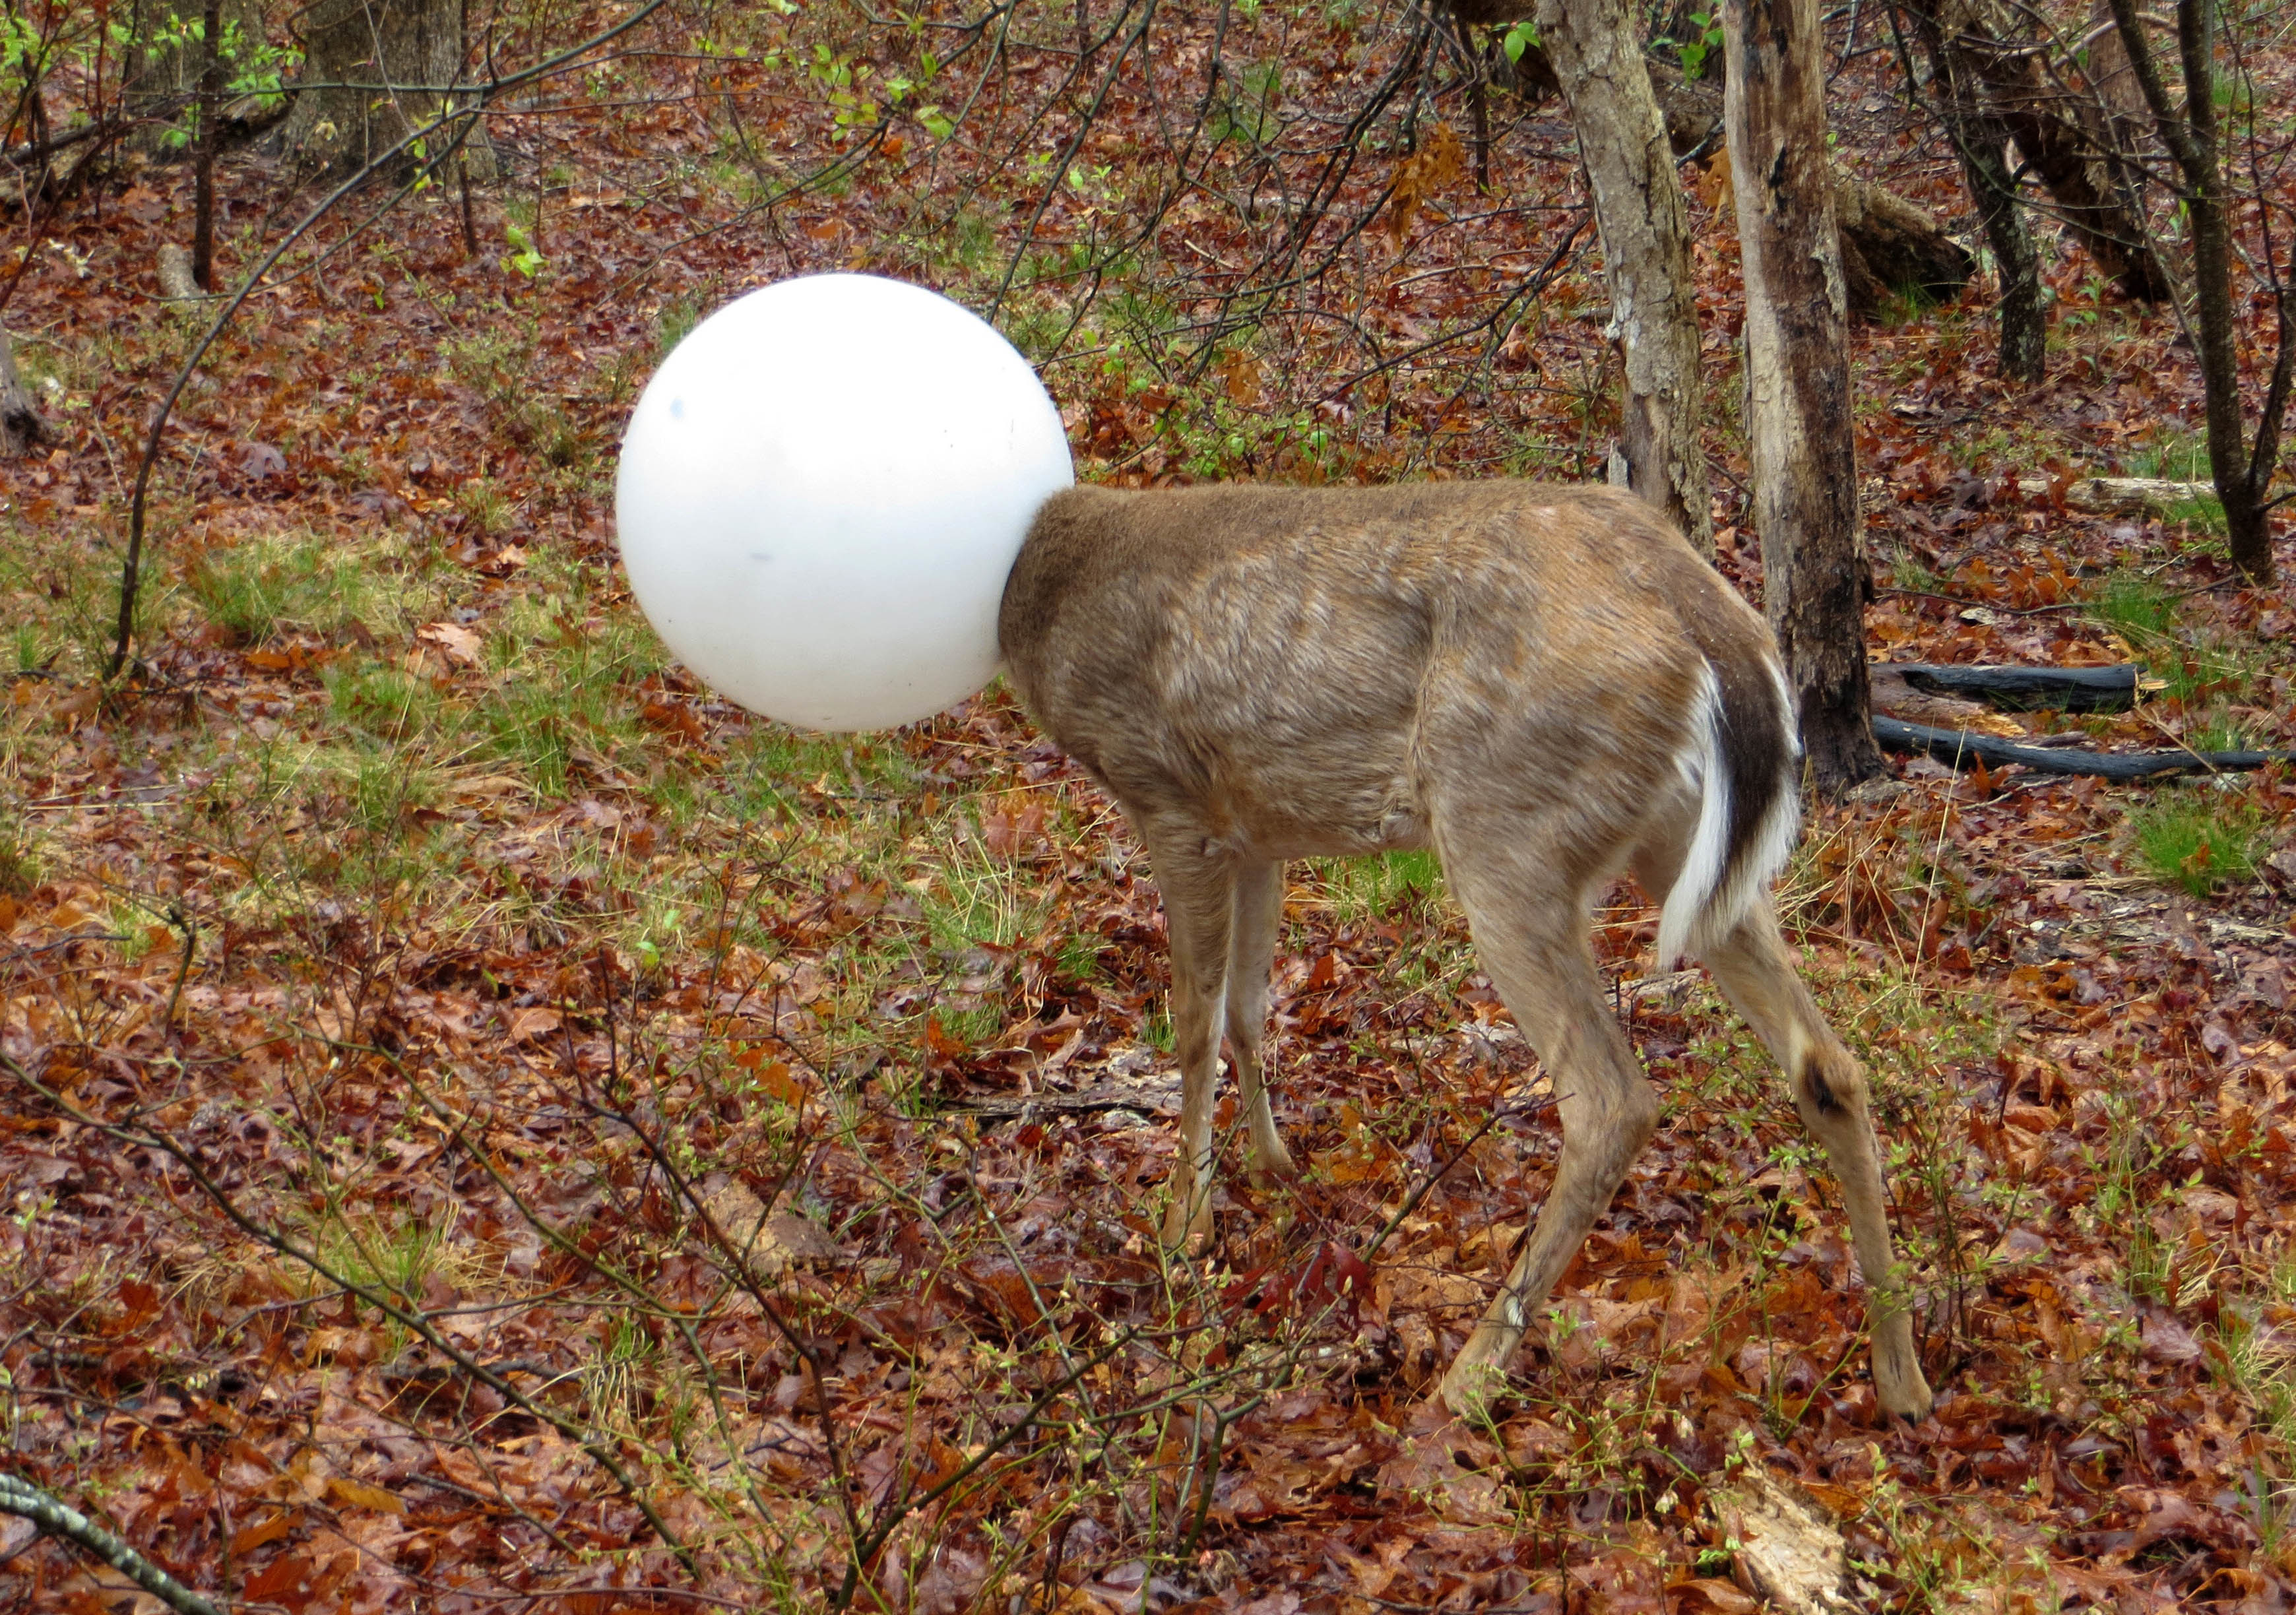 In this May 3, 2016 photo provided by the New York State Department of Environmental Conservation, a deer with its head caught in the globe from a lighting fixture over its head stands in the woods in Centereach, N.Y.